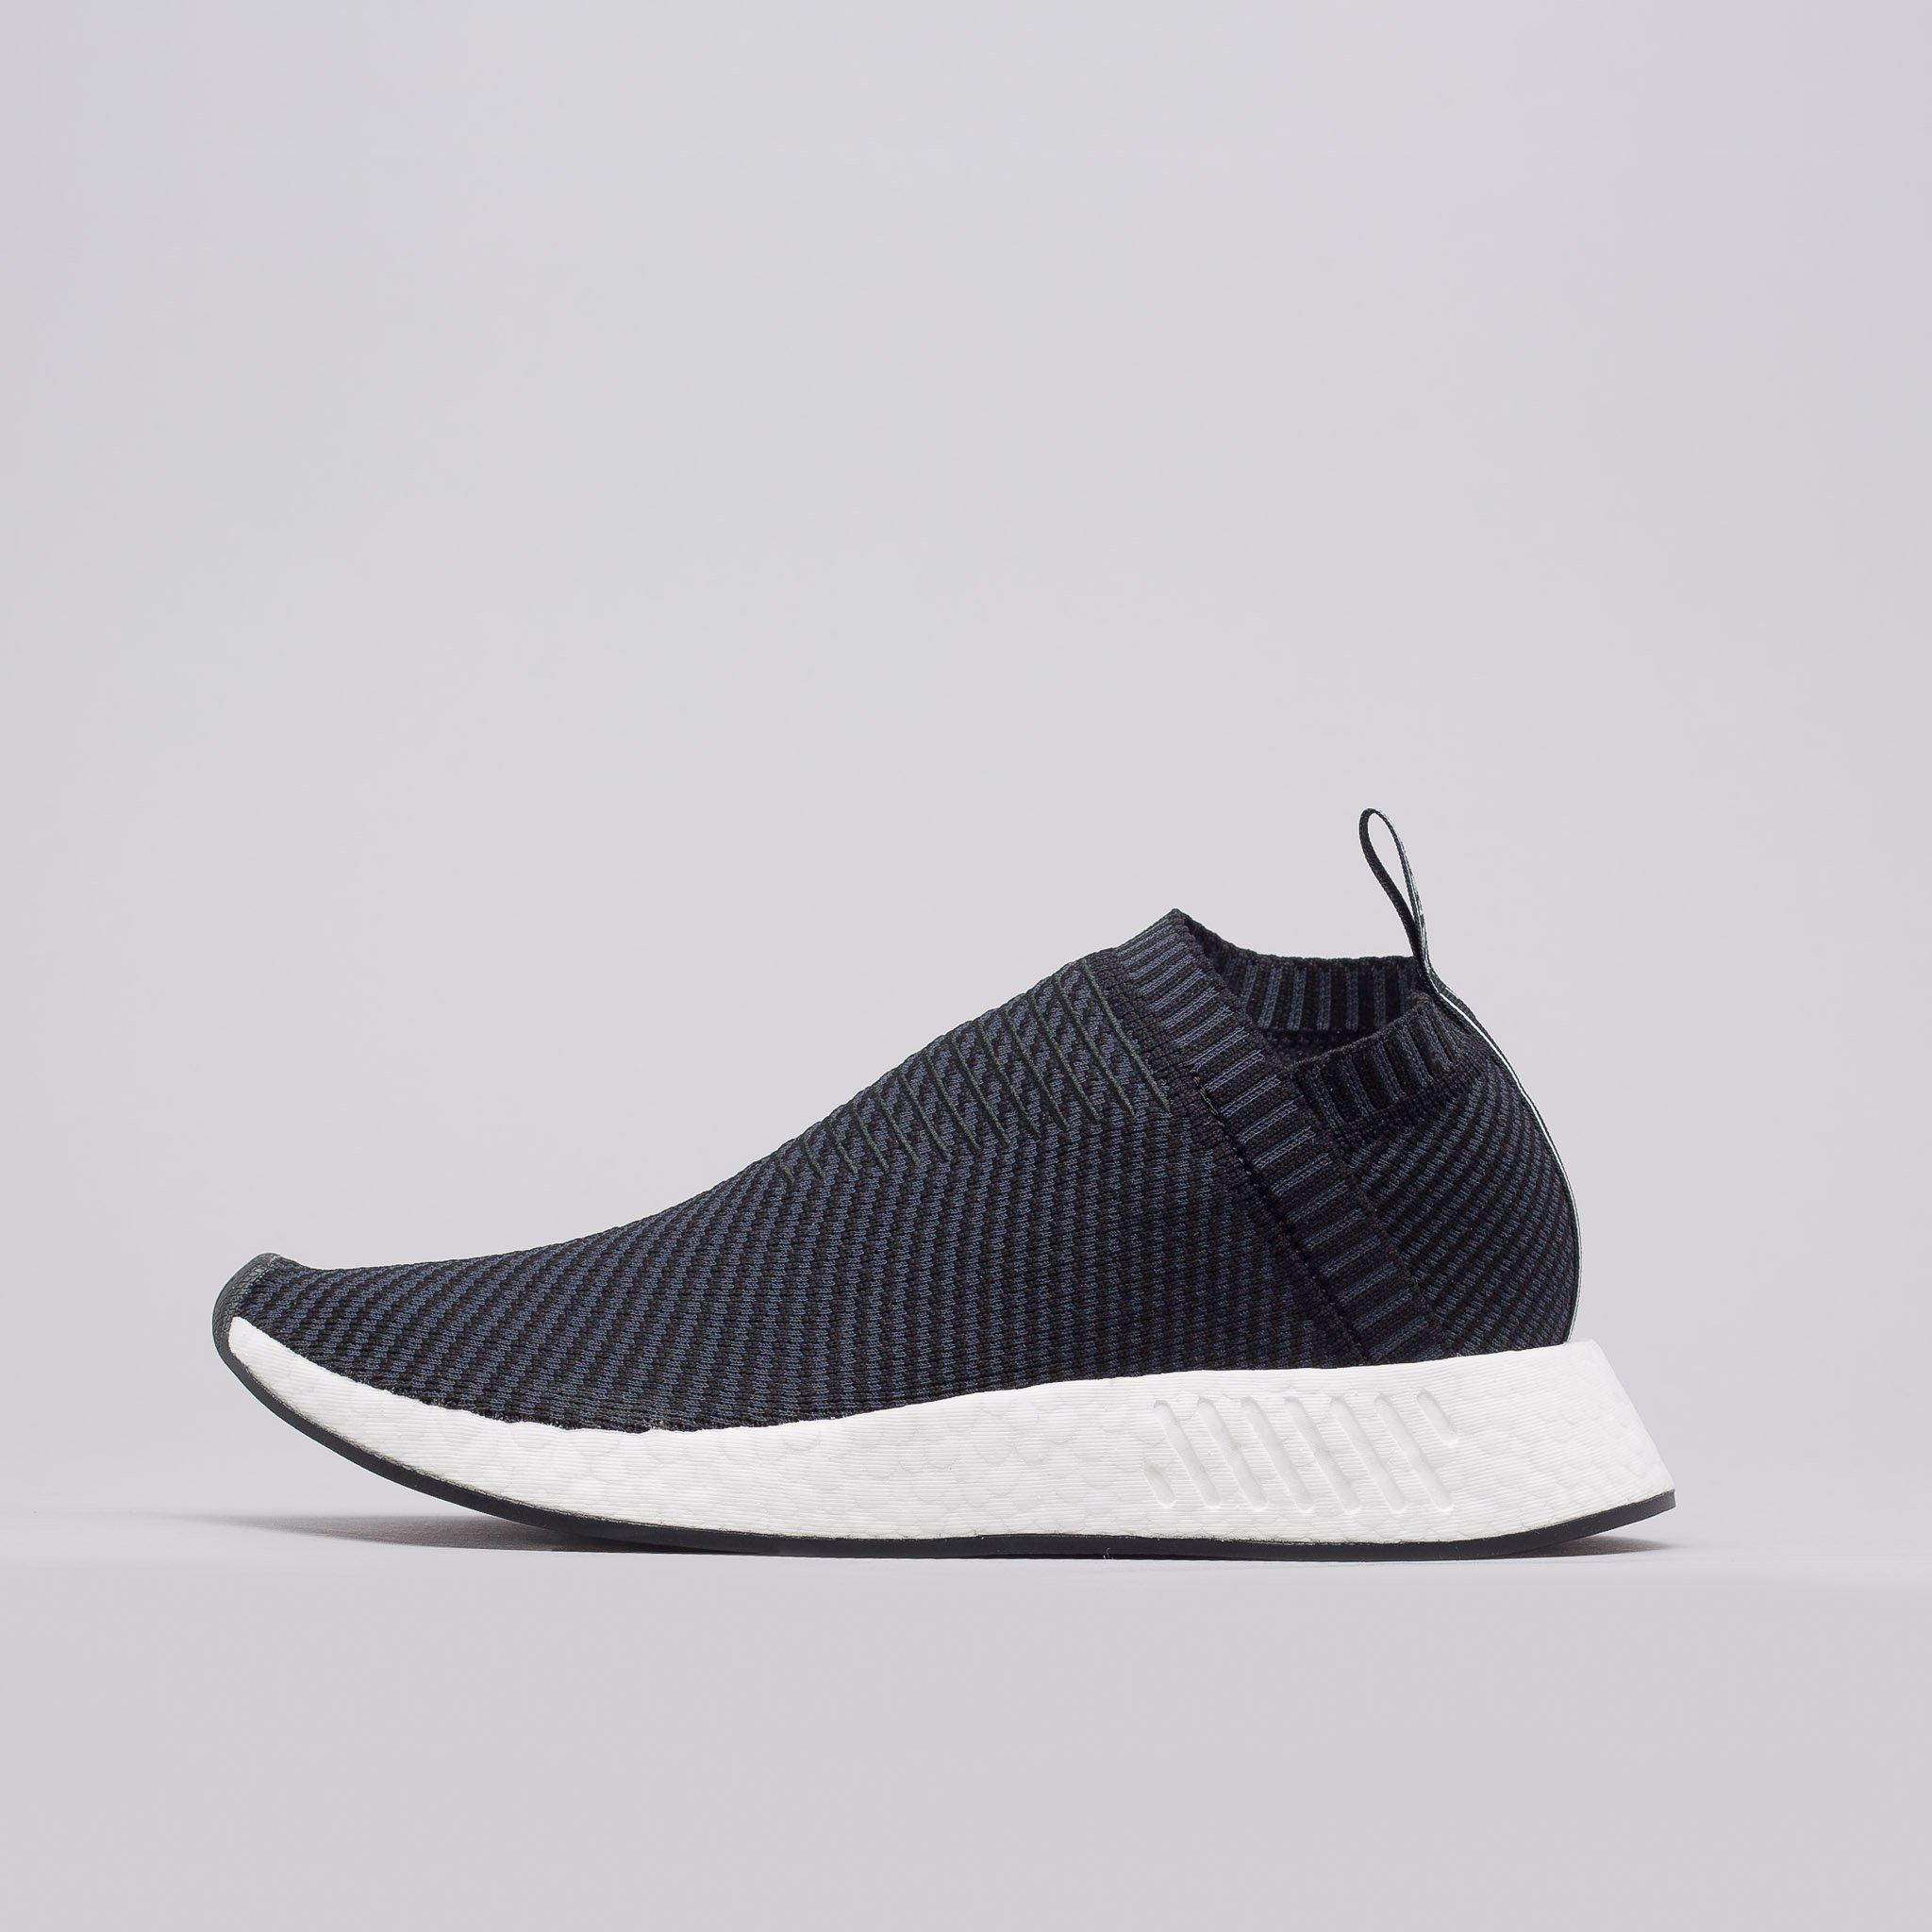 b64520c9d Lyst - adidas Nmd Cs2 Primeknit In Core Black carbon in Black for Men